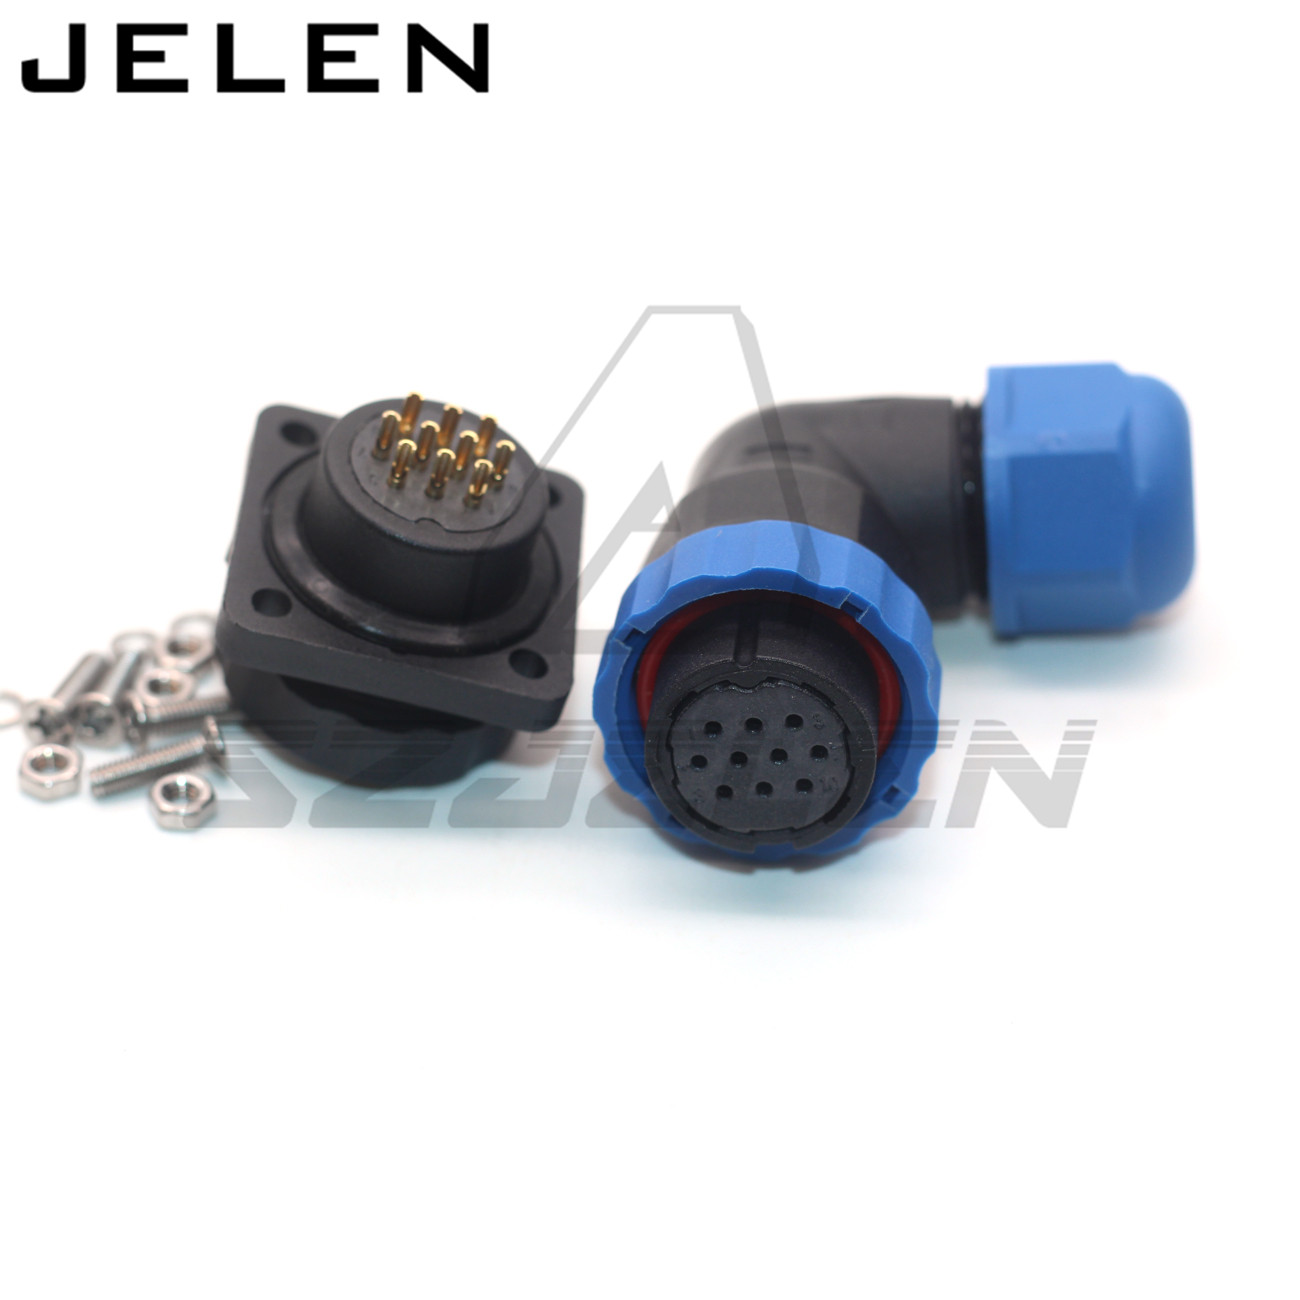 SD20 ip68 waterproof connector <font><b>1</b></font> 2 <font><b>3</b></font> <font><b>4</b></font> <font><b>5</b></font> 6 7 8 9 10 12 14pin connector Square Panel mount connector, outdoor power supply plug image